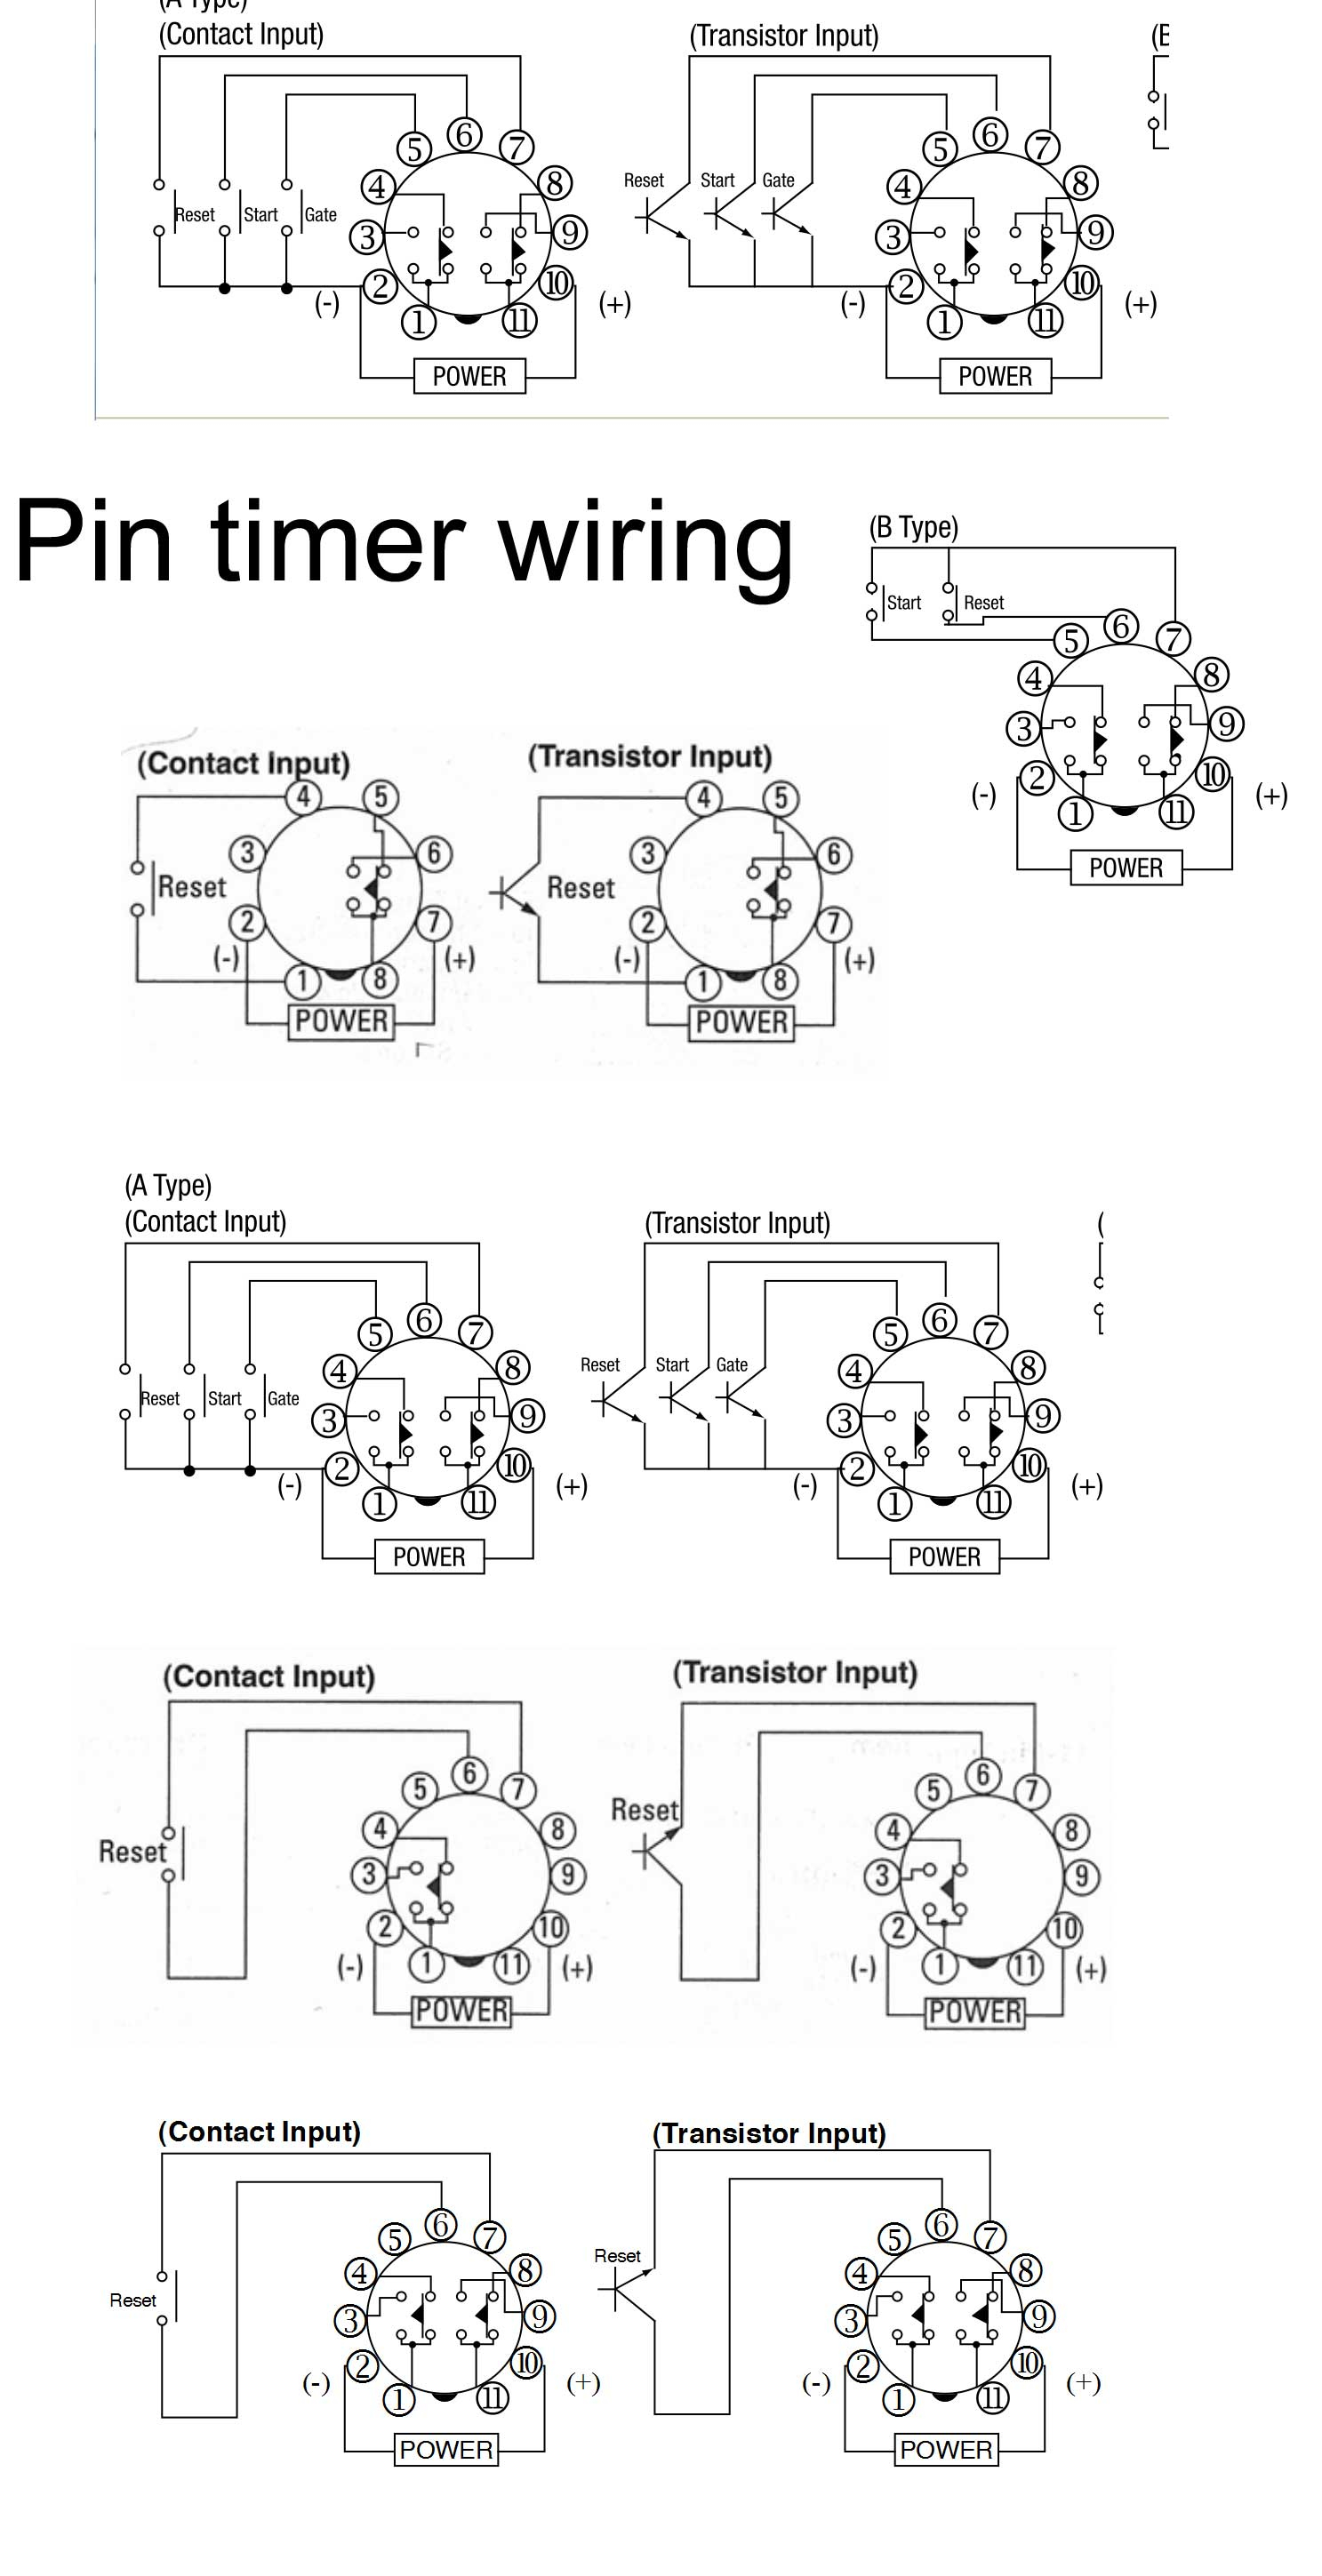 dayton time delay relay wiring diagram Collection-Omron H3ca A Wiring Diagram Unique Series Wiring Diagram Timer Wiring Diagrams Schematics 10-m